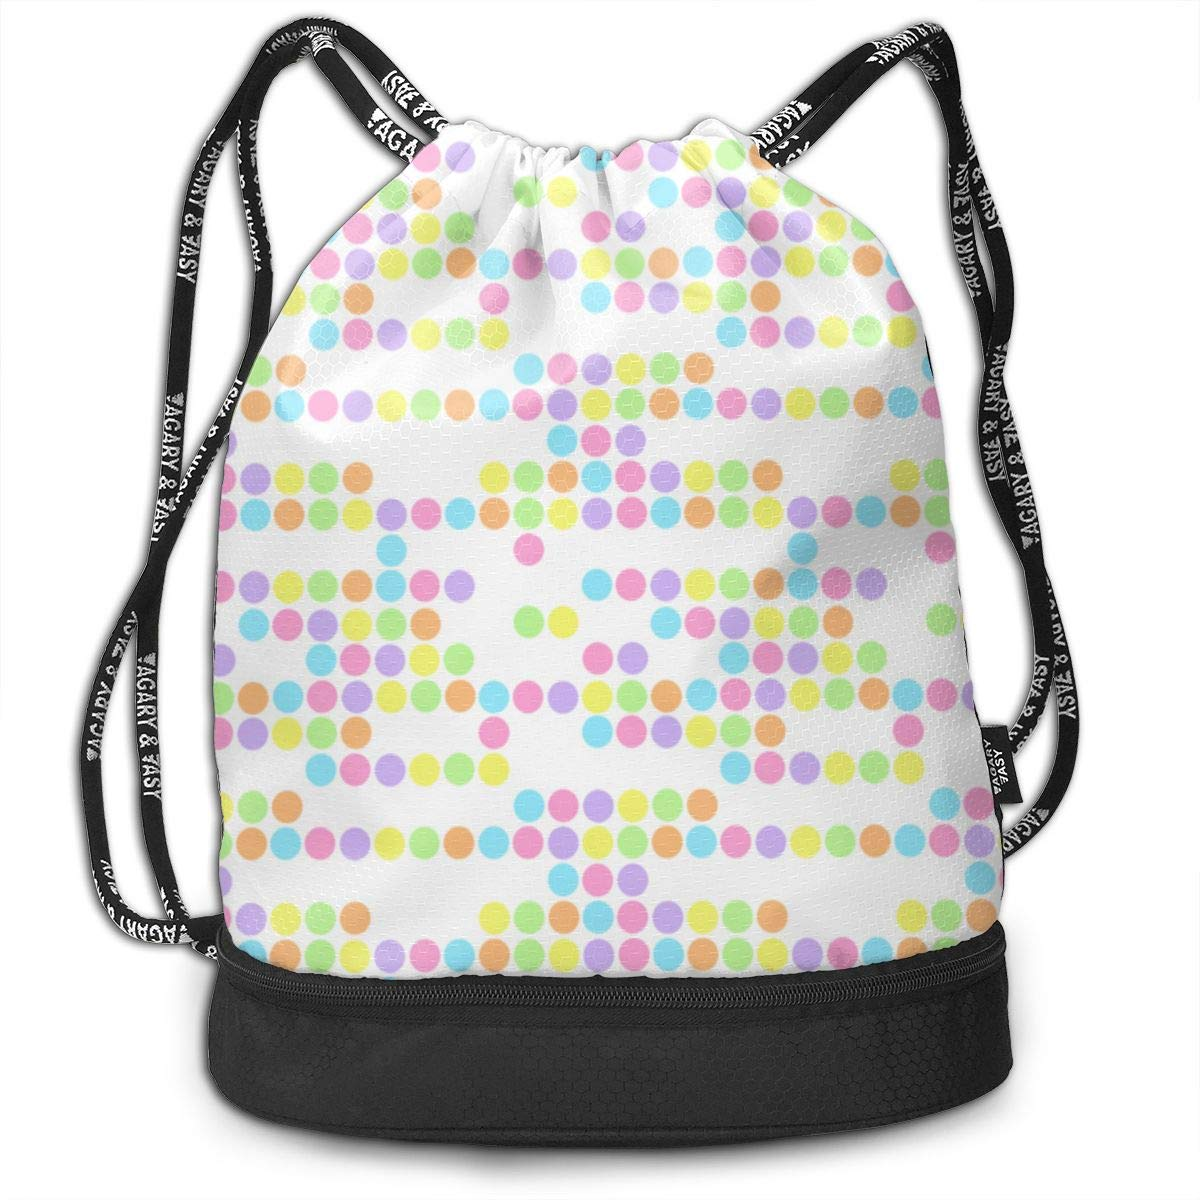 Baby Pastel Dots Pattern Drawstring Backpack Sports Athletic Gym Cinch Sack String Storage Bags for Hiking Travel Beach